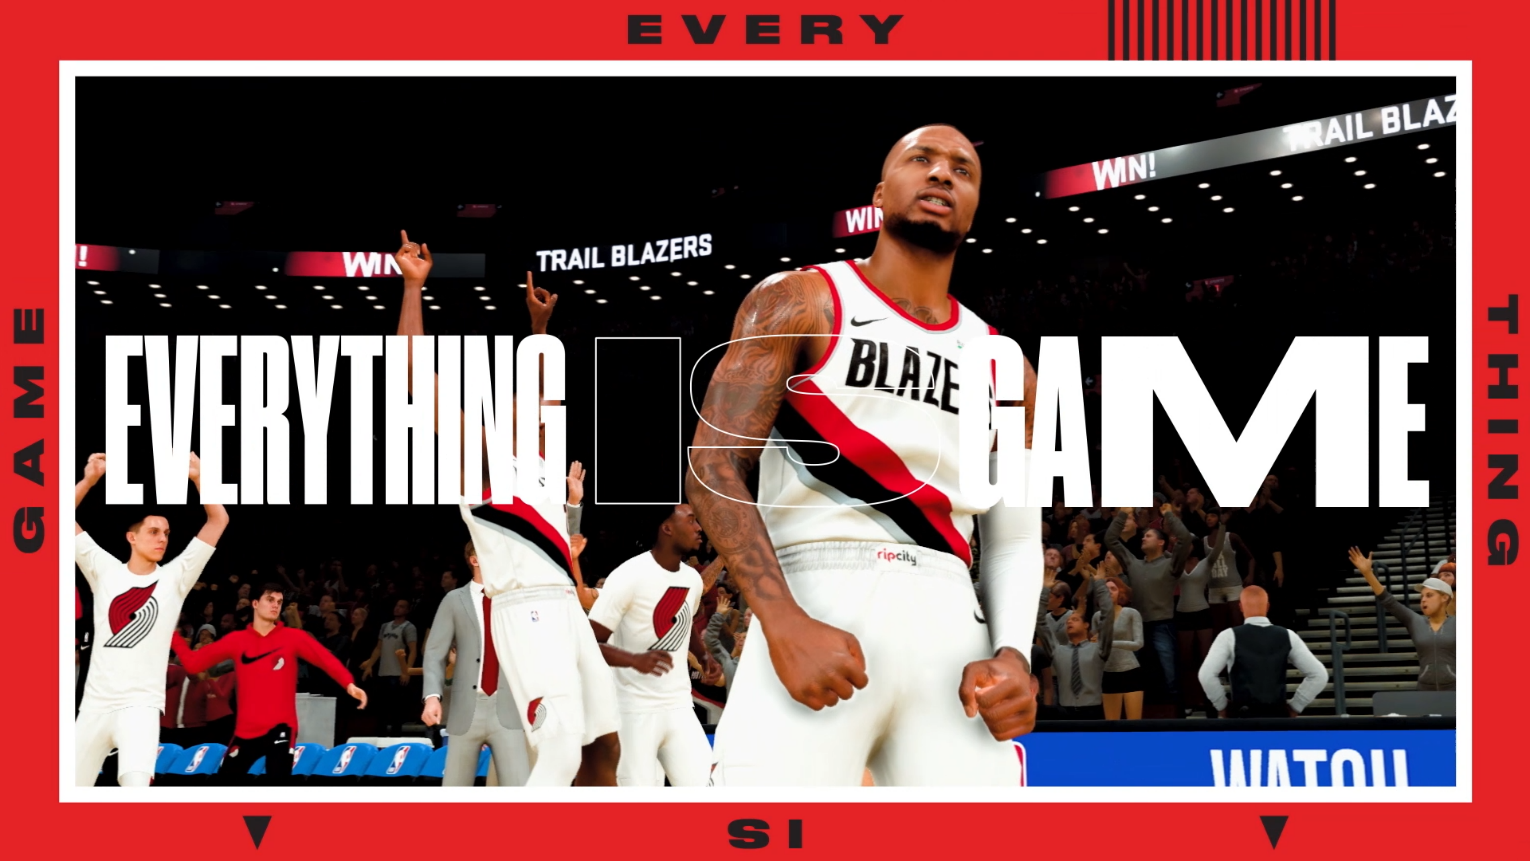 NBA 2k21 everything is game